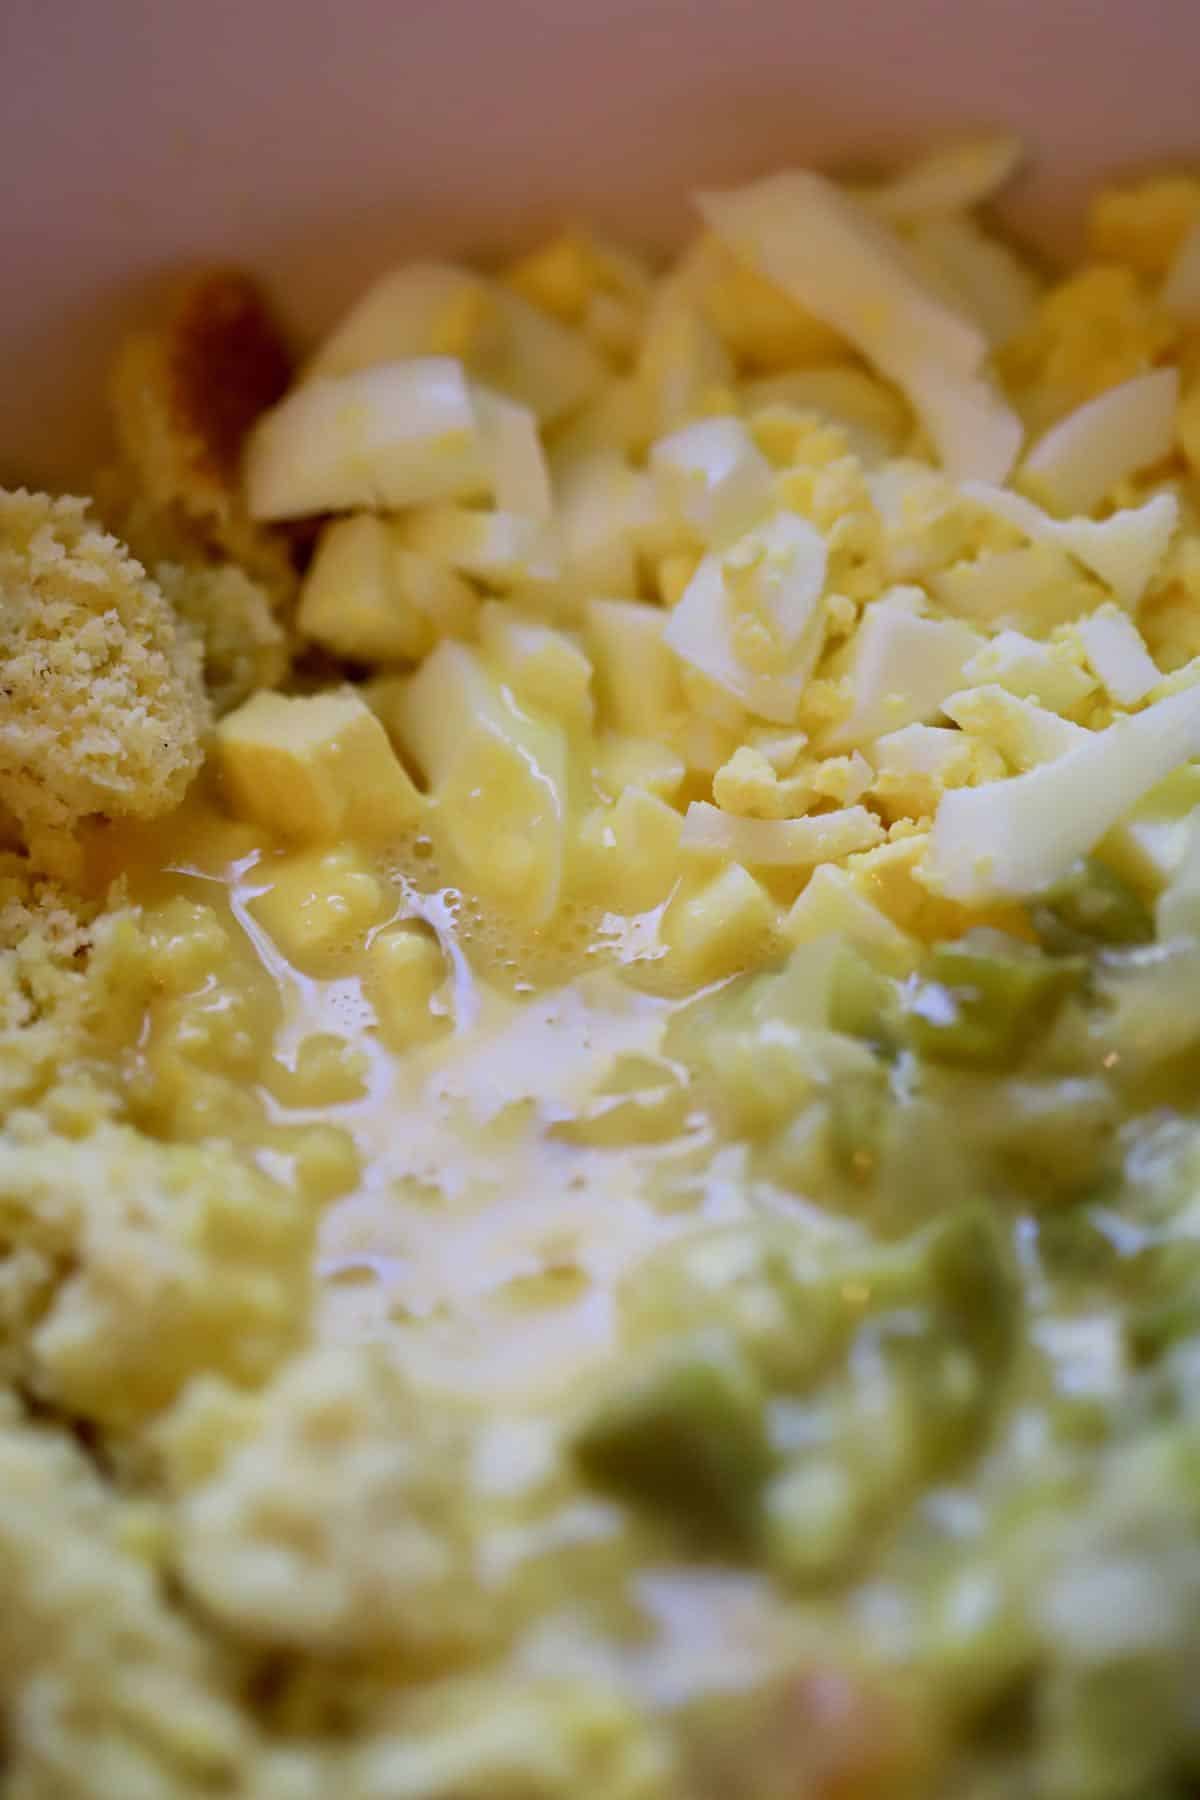 Chopped hard boiled eggs, celery and cornbread in a bowl.